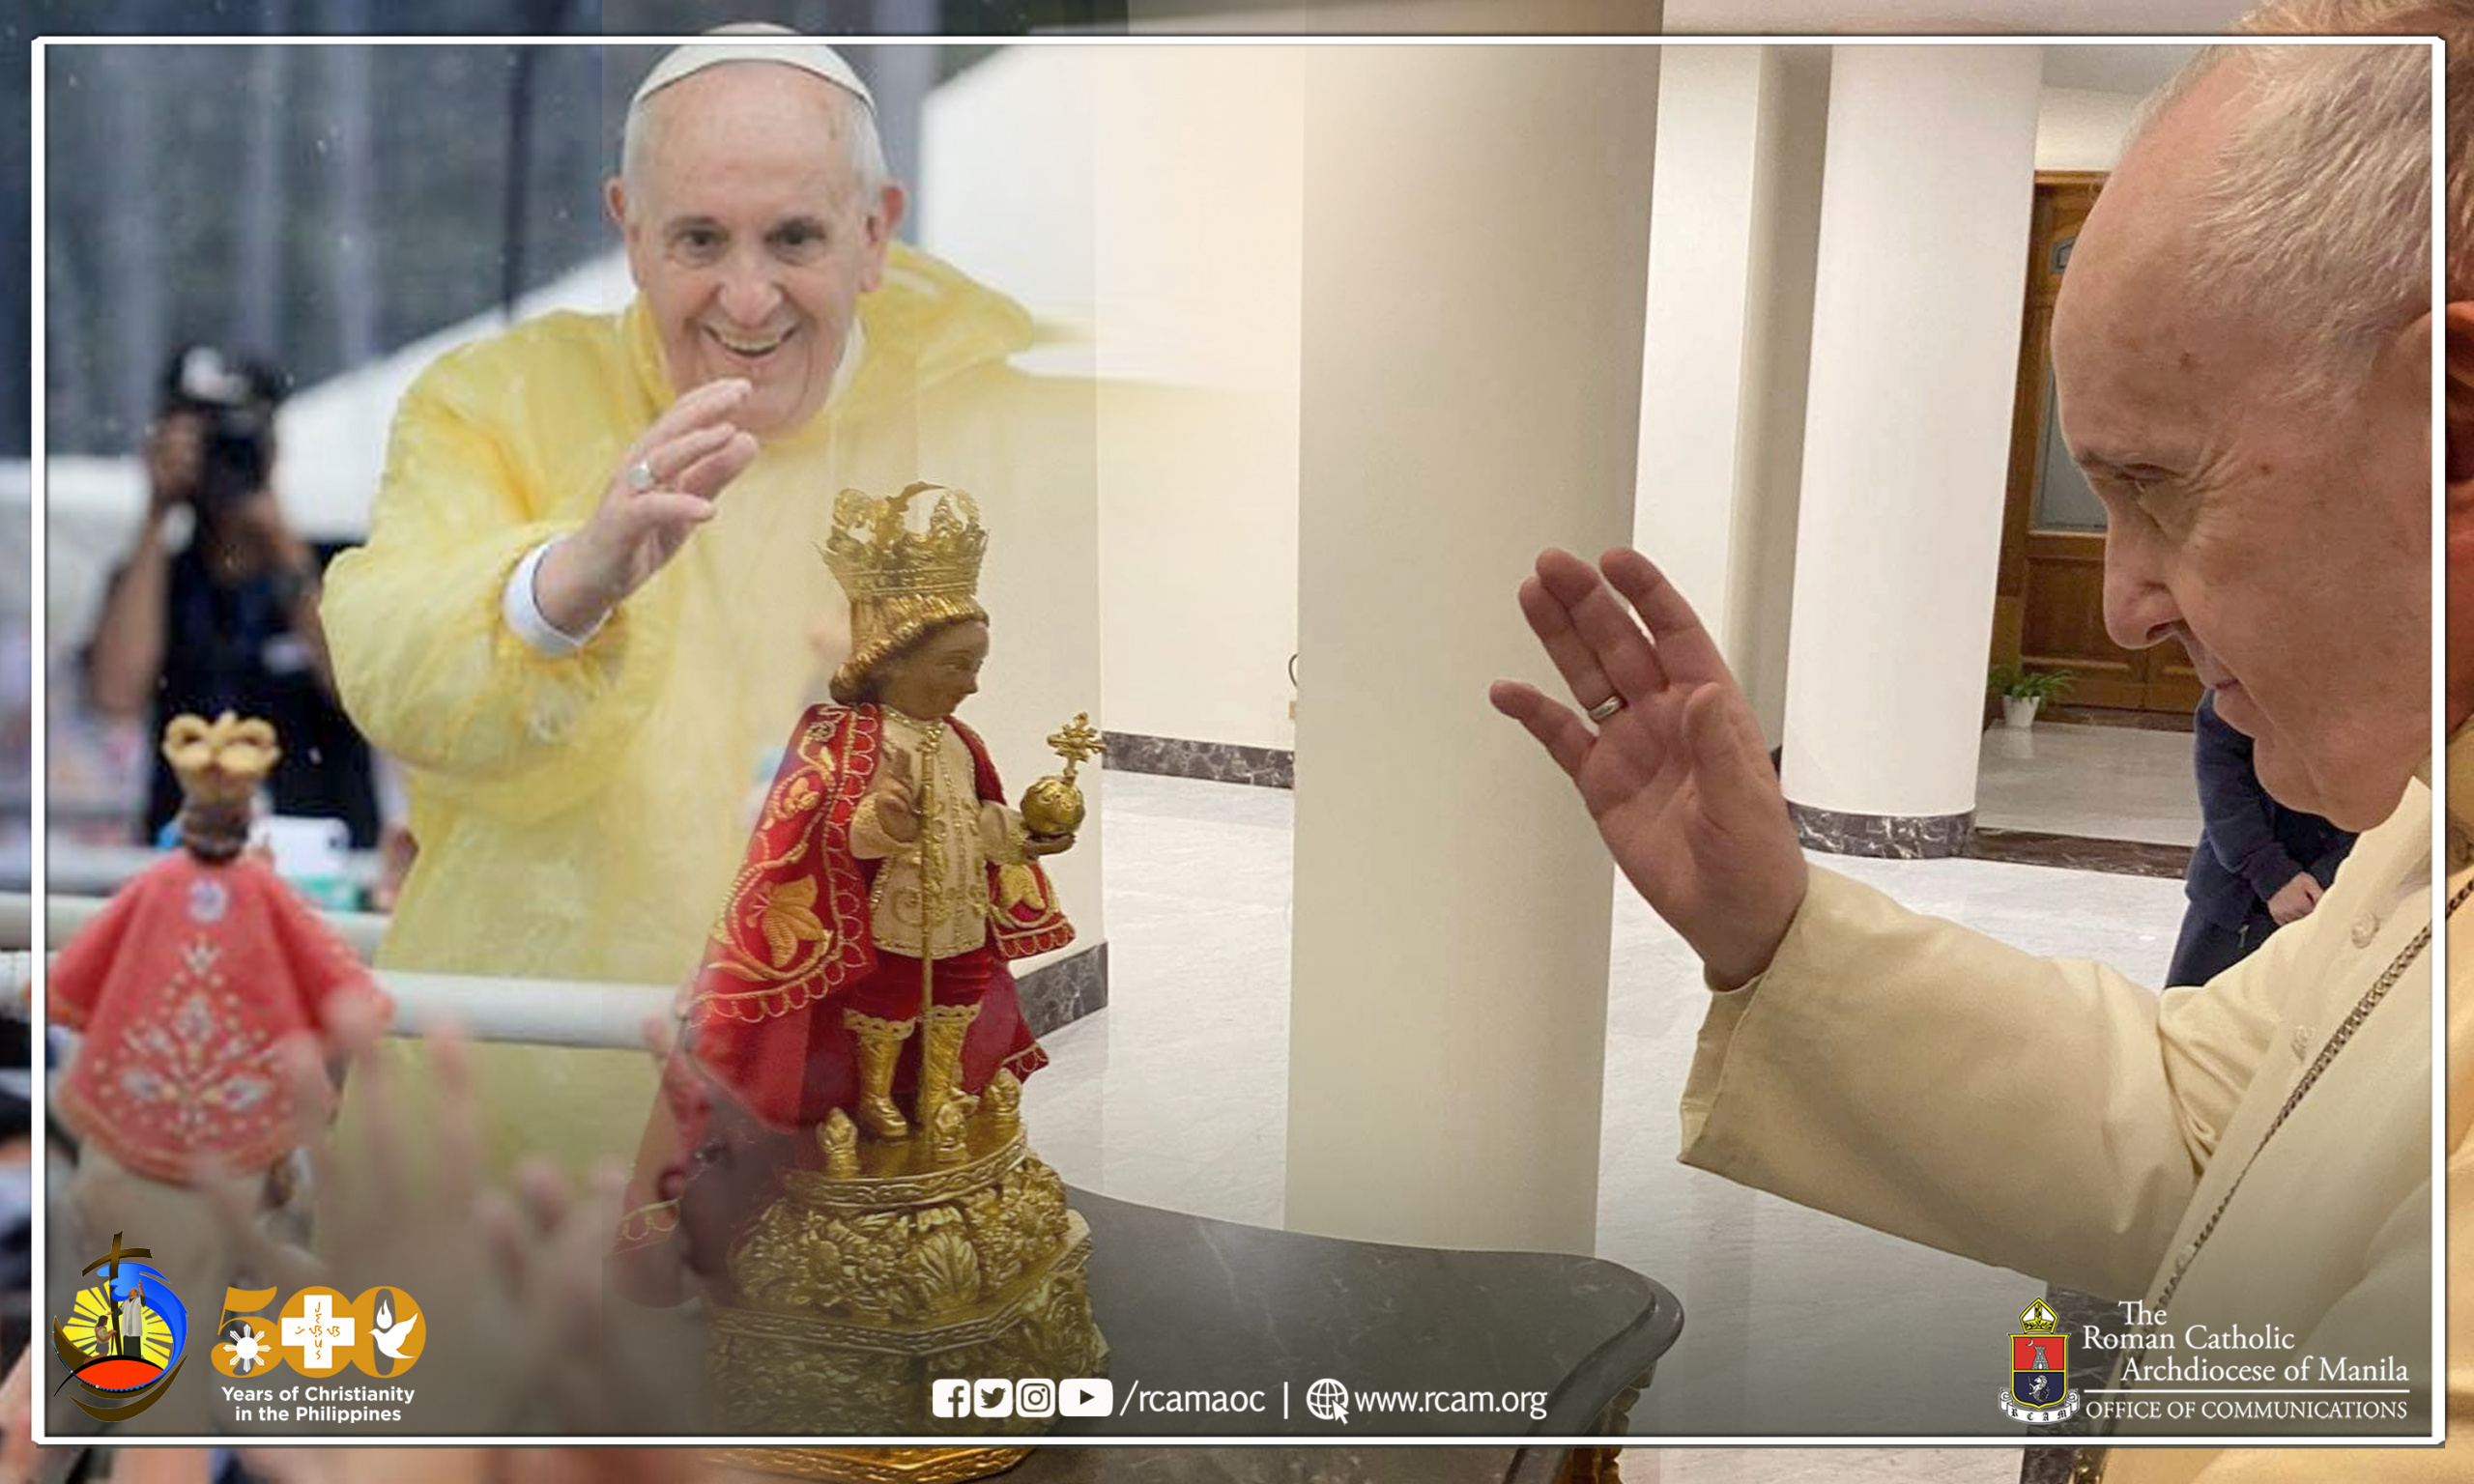 Pope Francis recalls visit to the Philippines affectionately